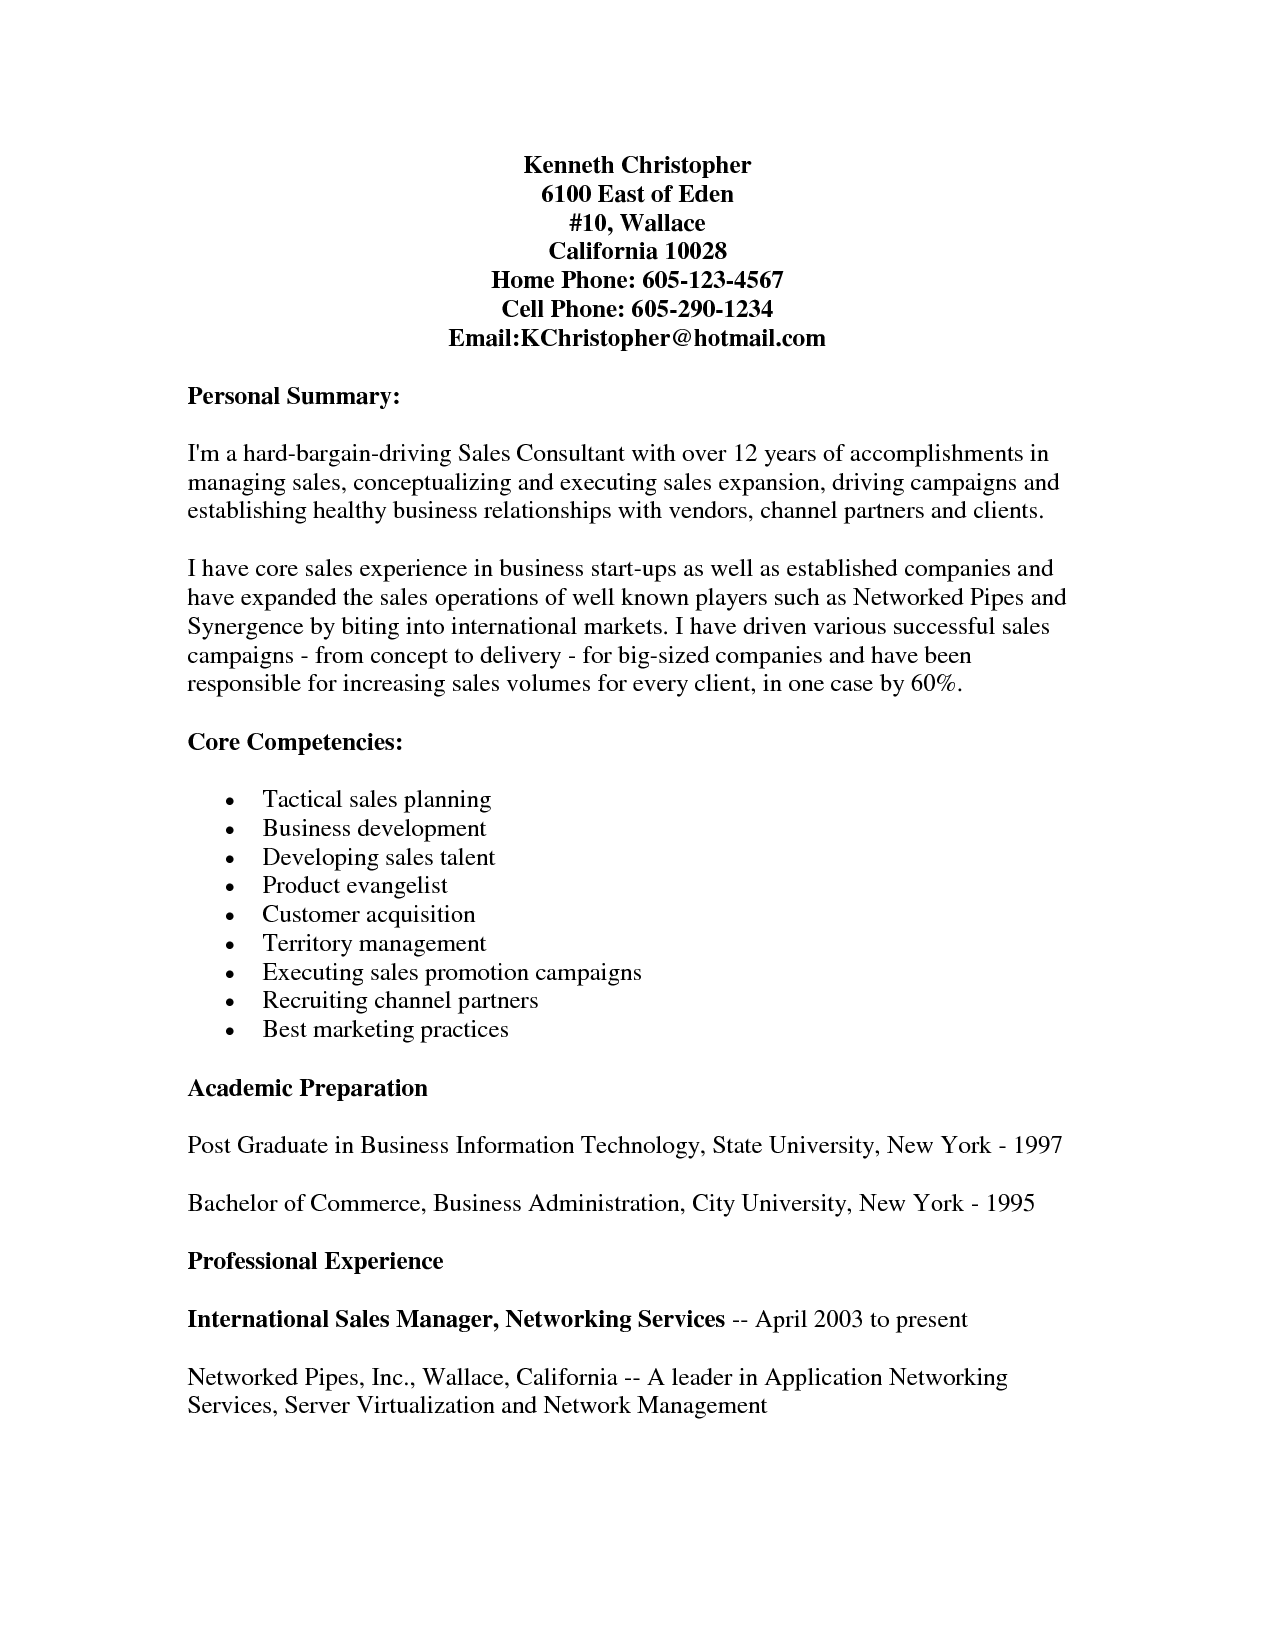 best resume templates best resume templates free download  attractive resume templates free